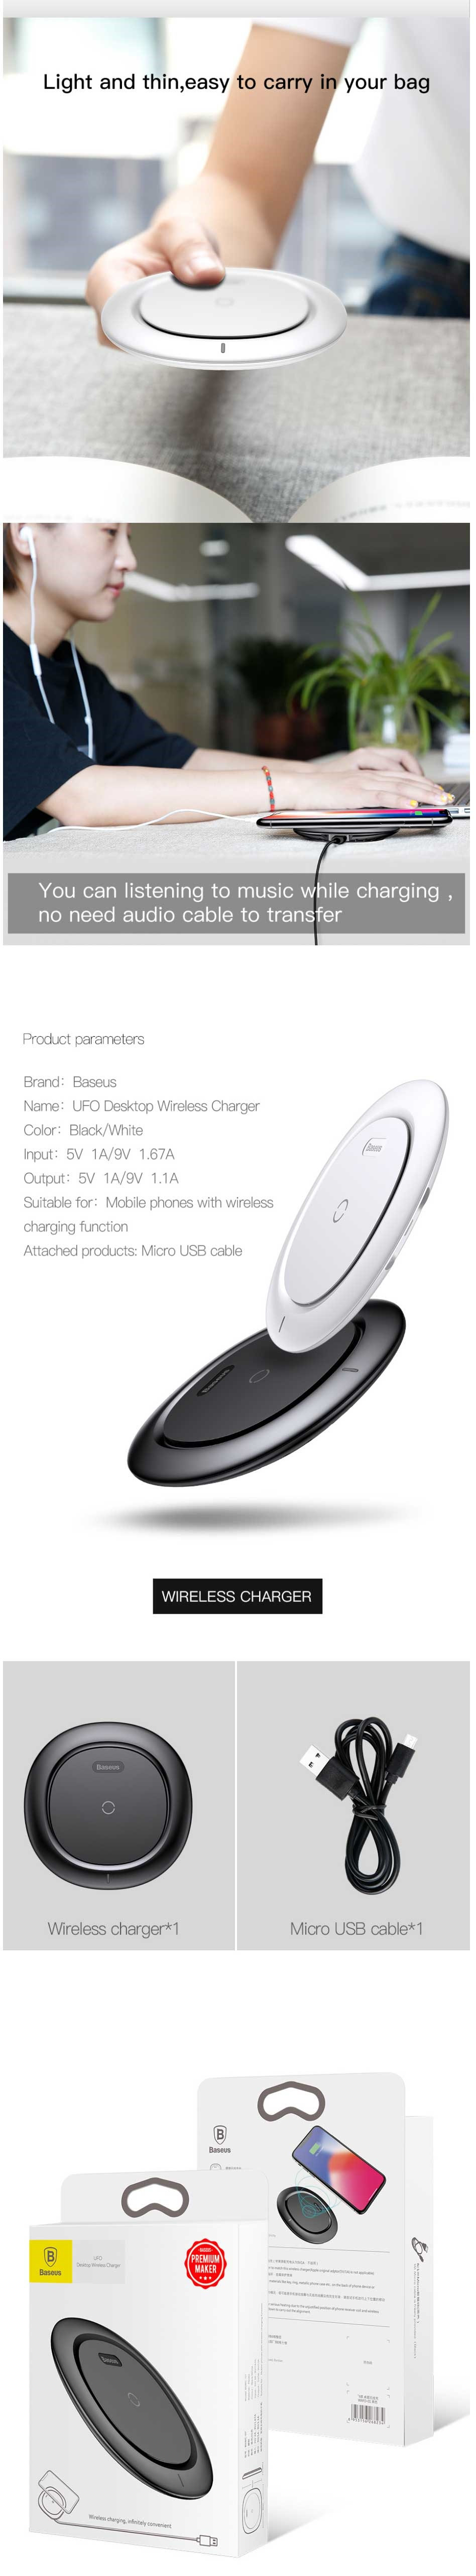 Baseus UFO Wireless Charger Charging Pad